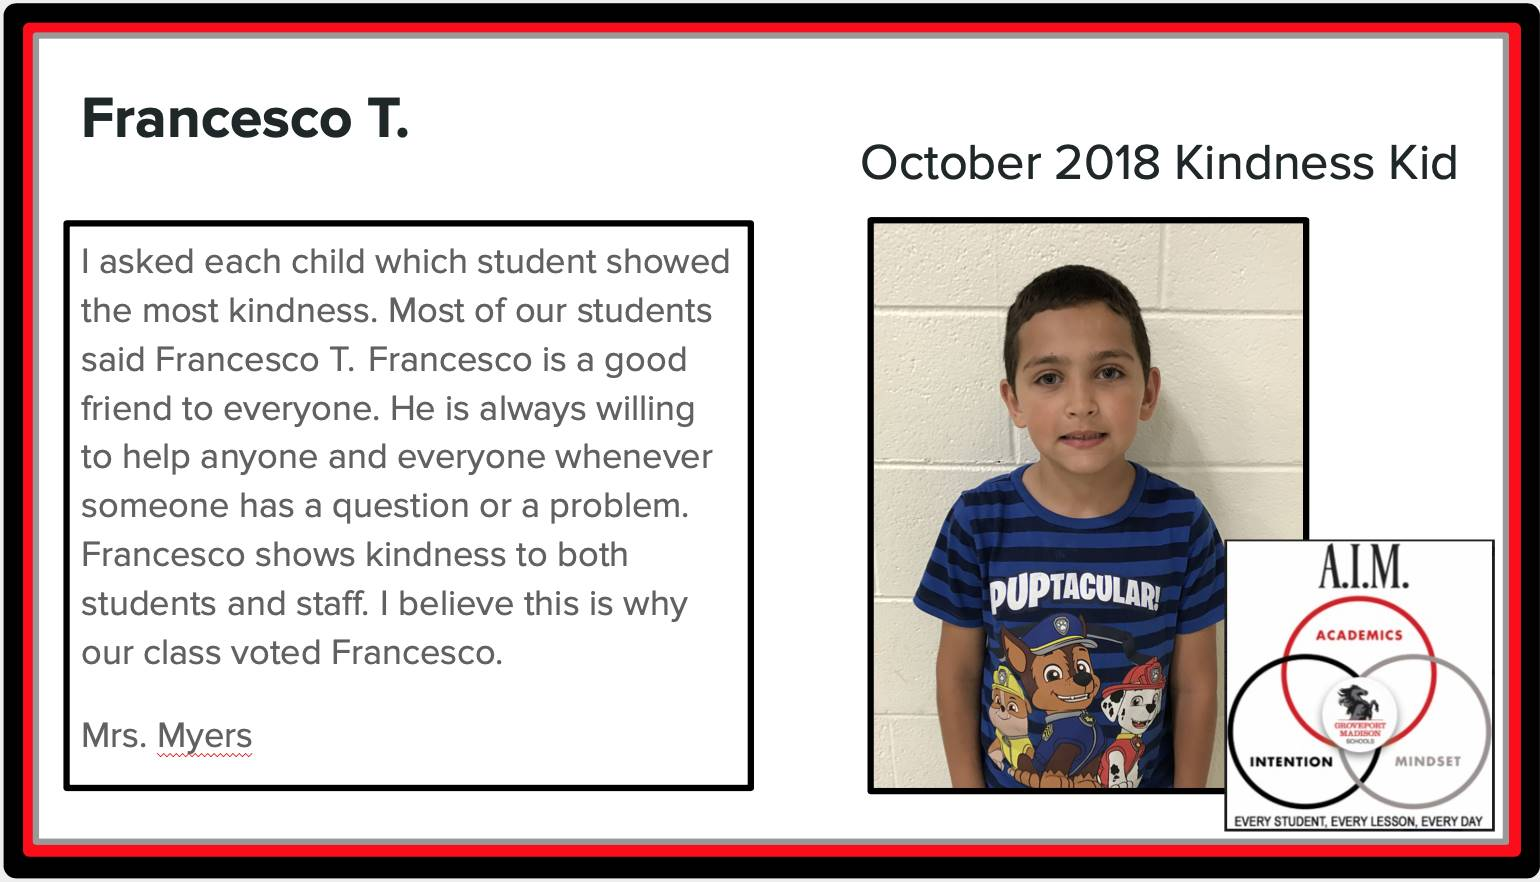 Kindness Kid Francesco